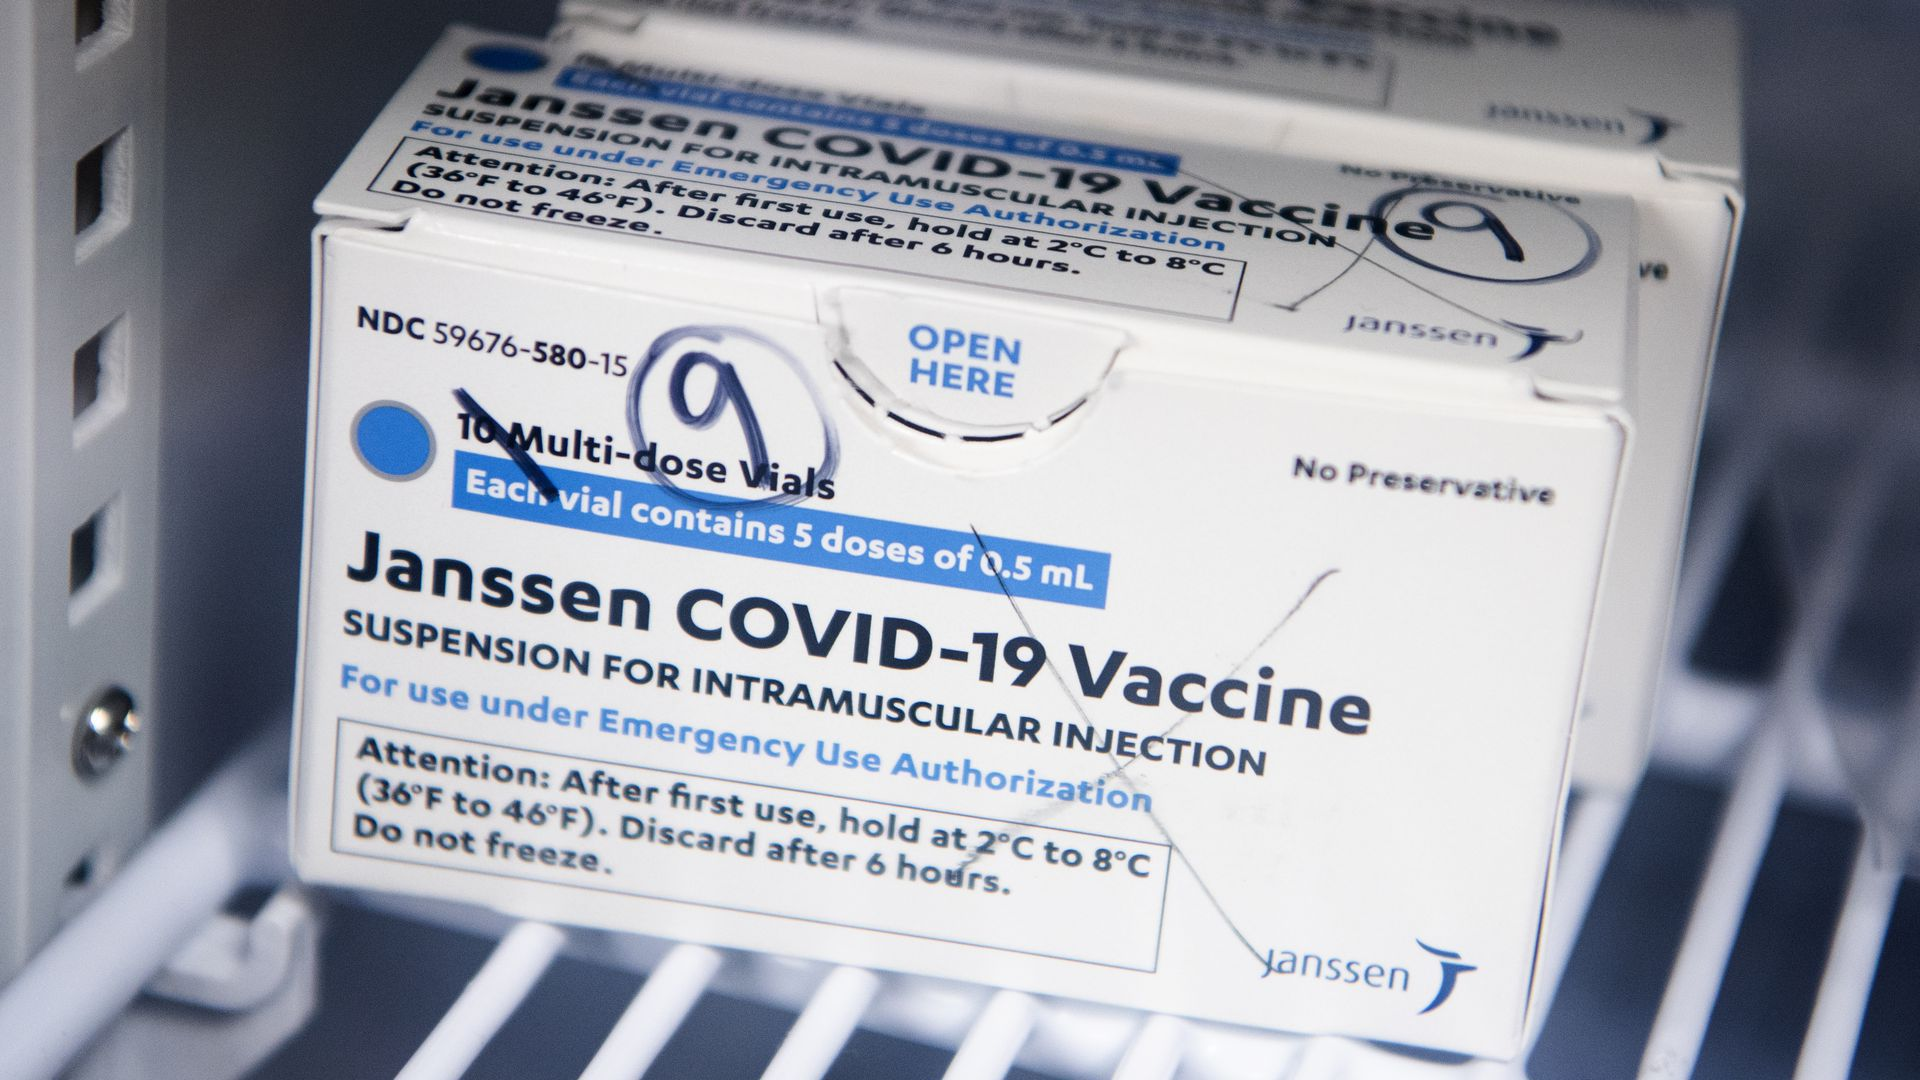 A box with the J&J Covid vaccine inside